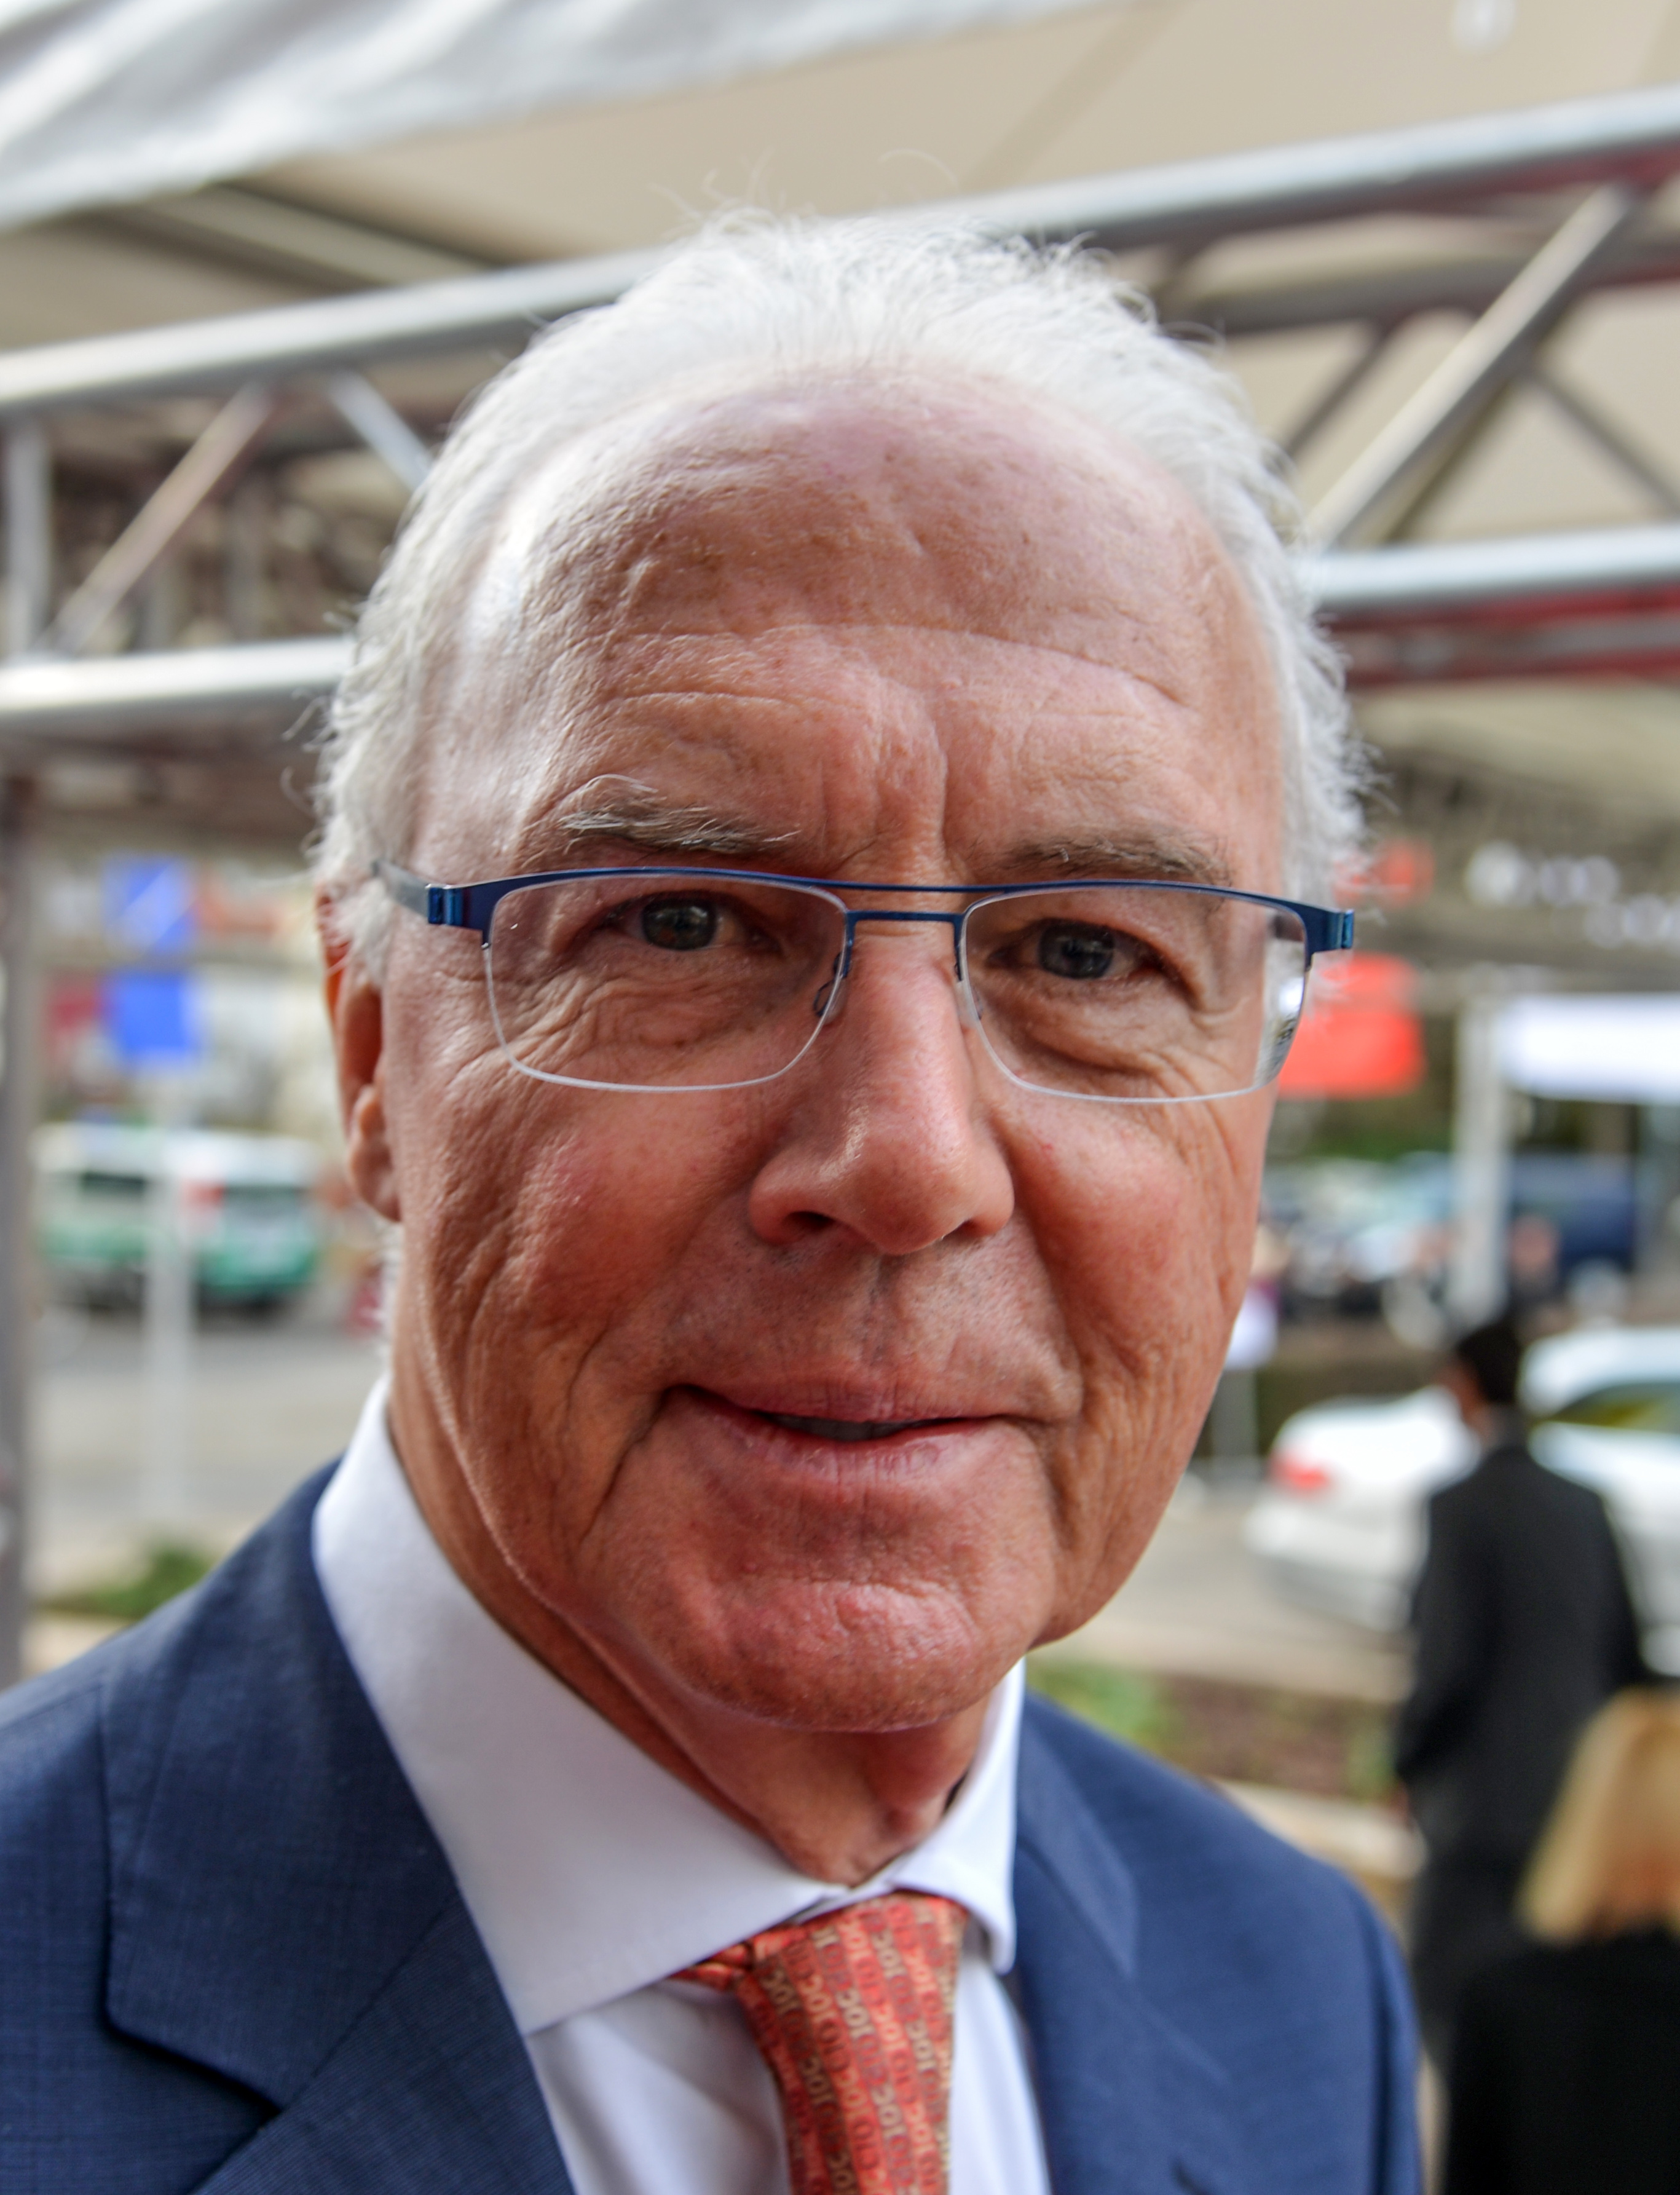 The 73-year old son of father Franz and mother Antonie Franz Beckenbauer in 2018 photo. Franz Beckenbauer earned a  million dollar salary - leaving the net worth at 275 million in 2018